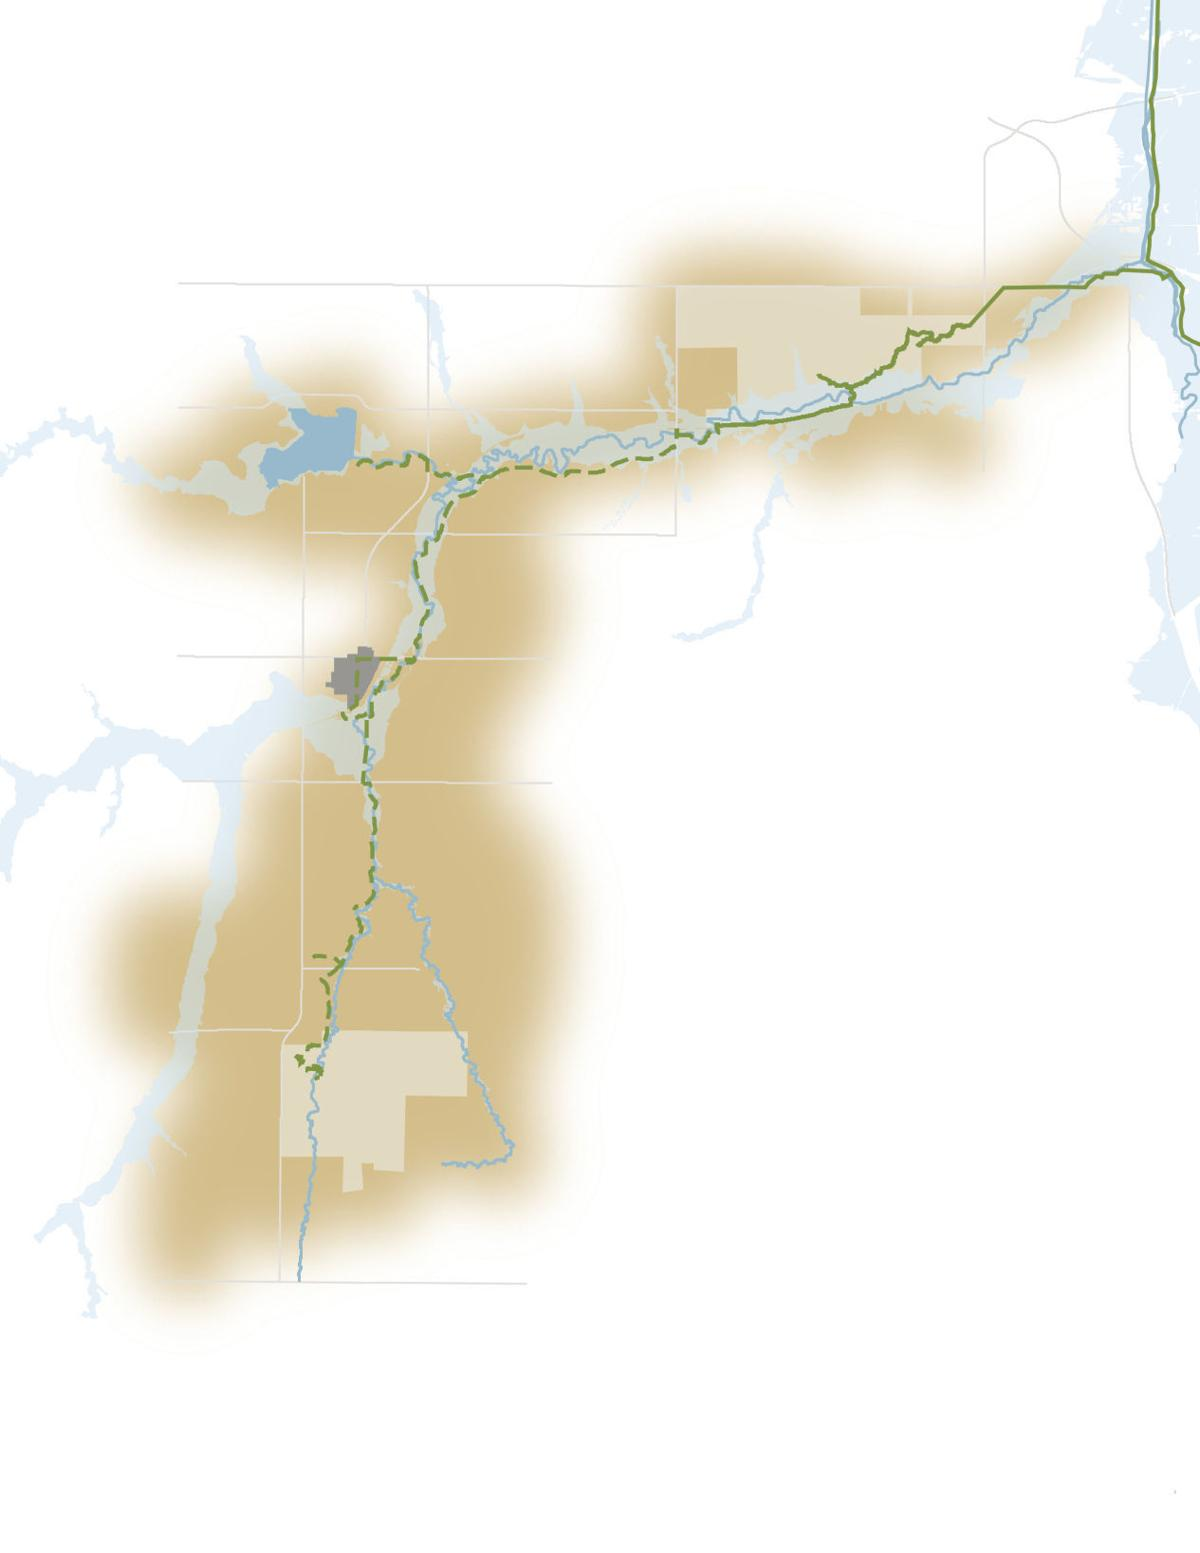 Haines Branch Prairie Corridor Project Is An Opportunity To